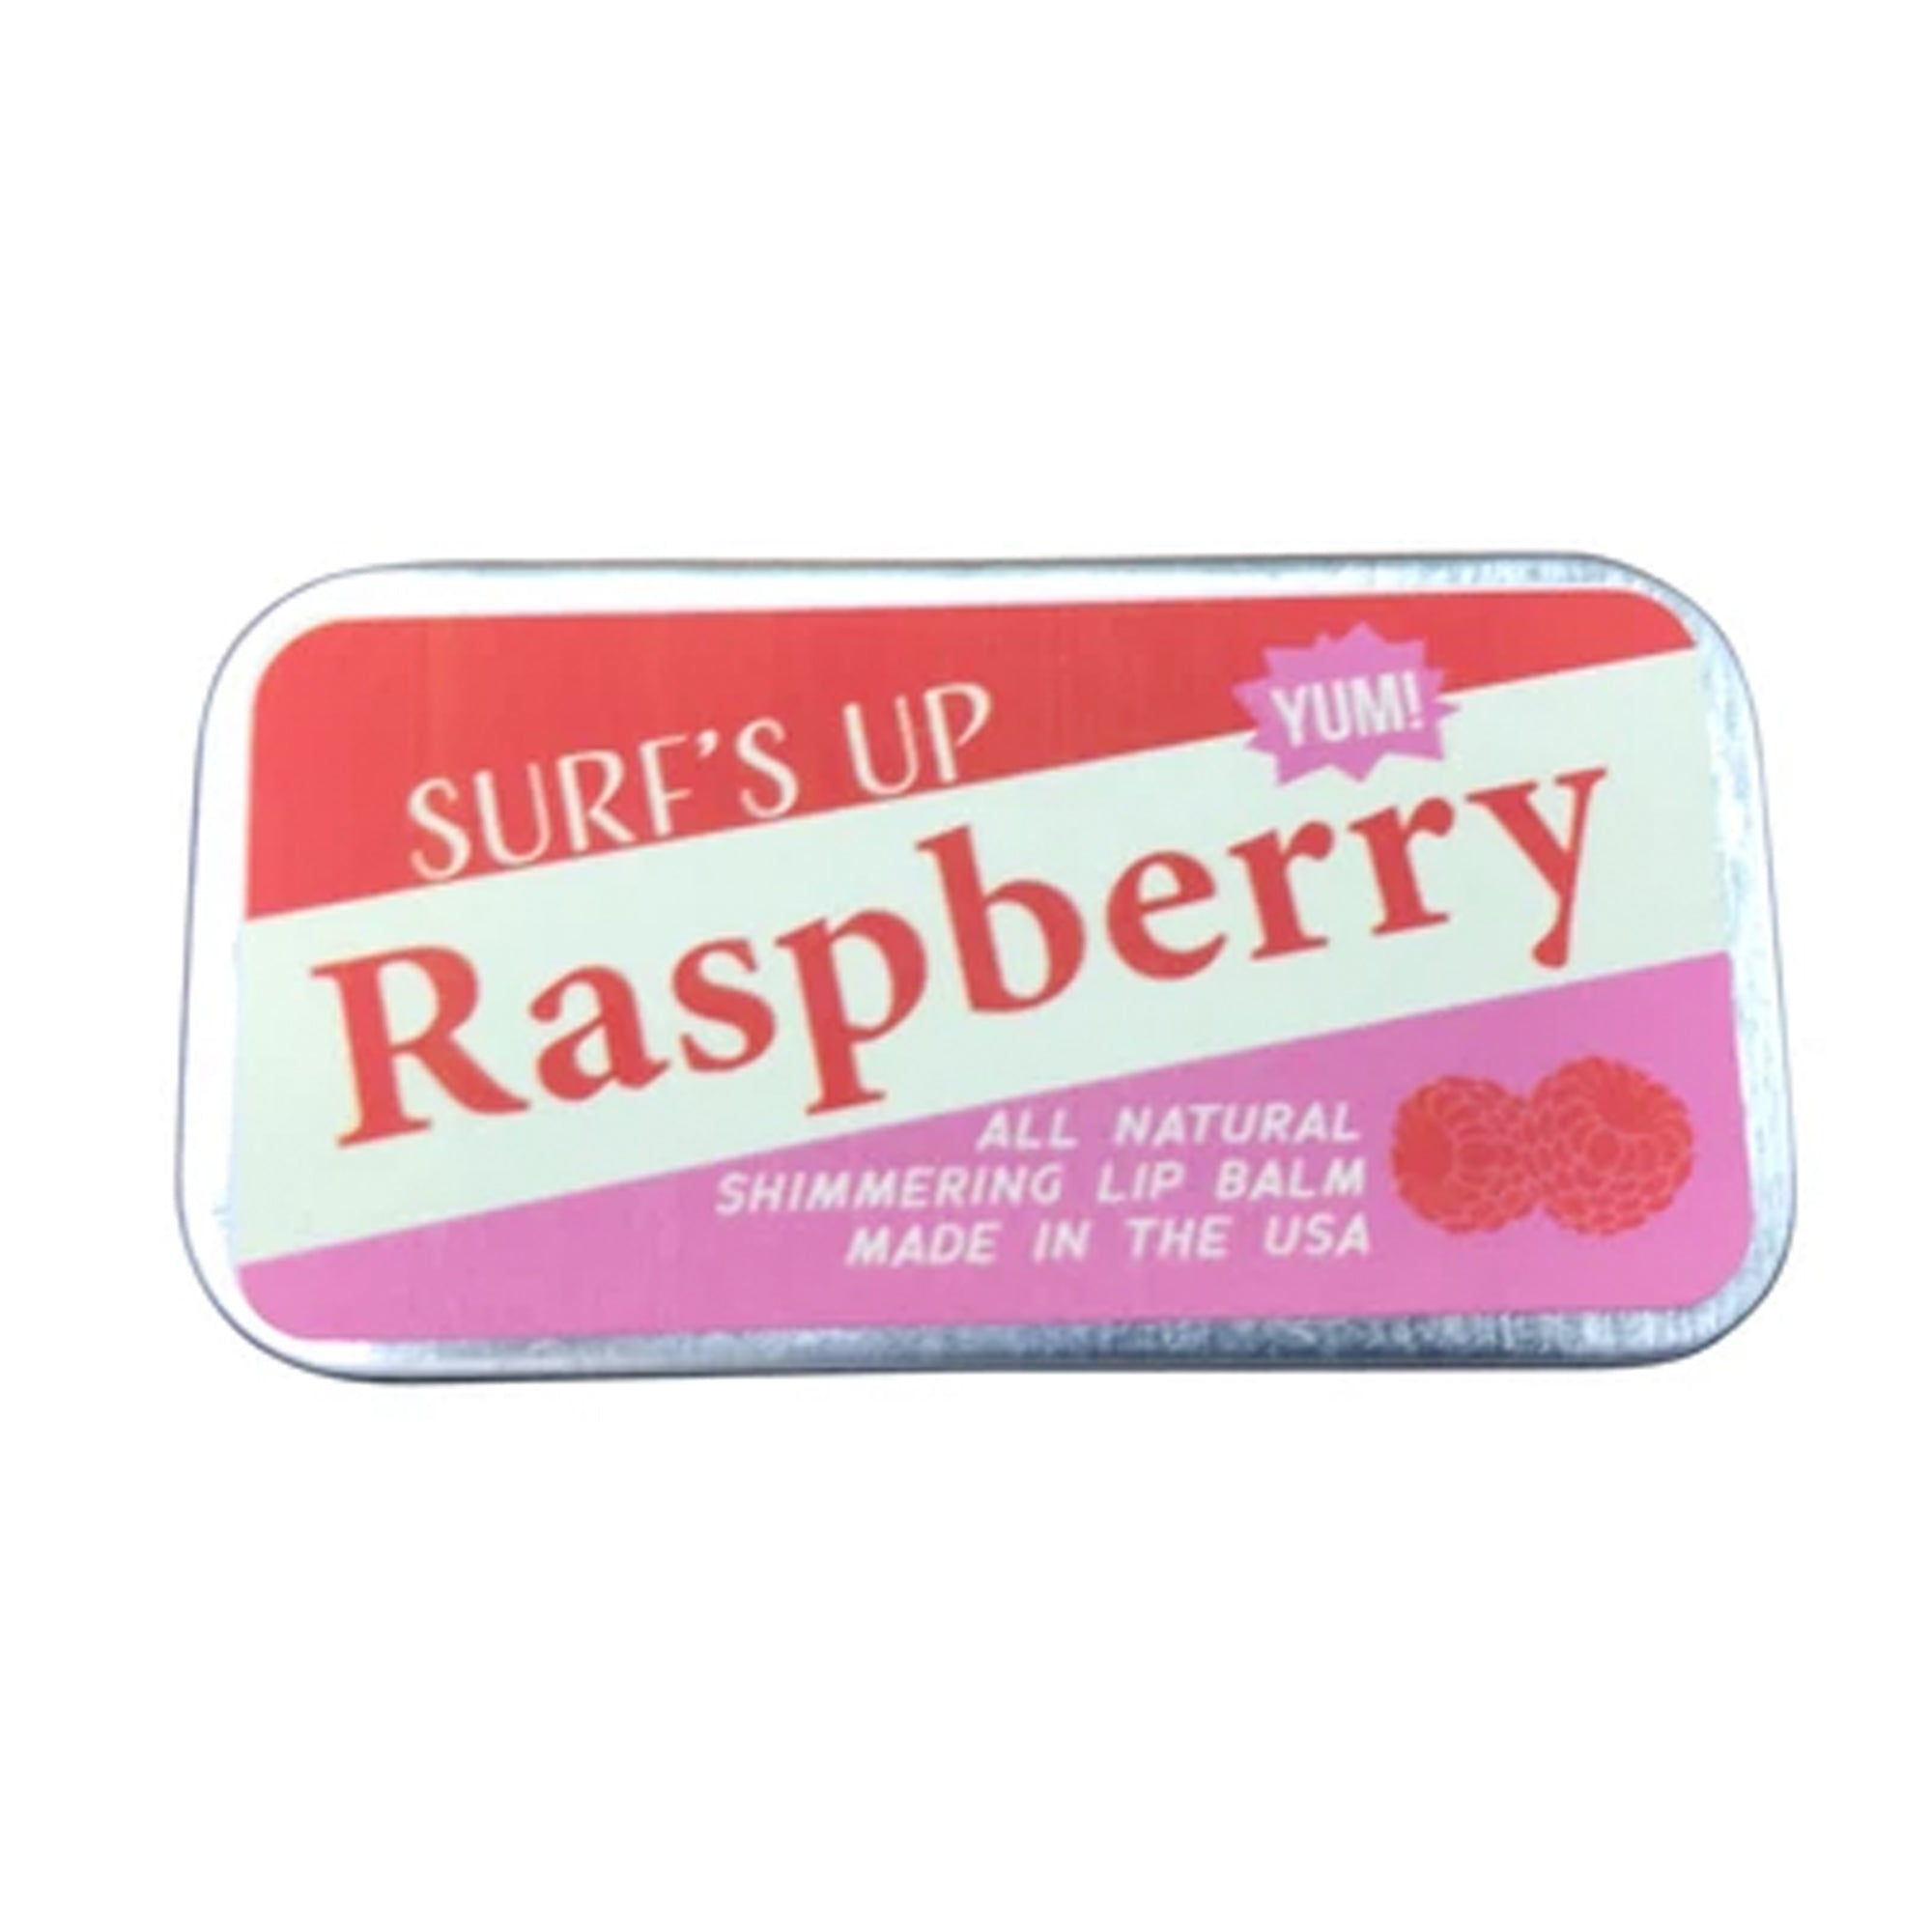 Surf's Up Raspberry Shimmering Sliding Tin Lip Balm